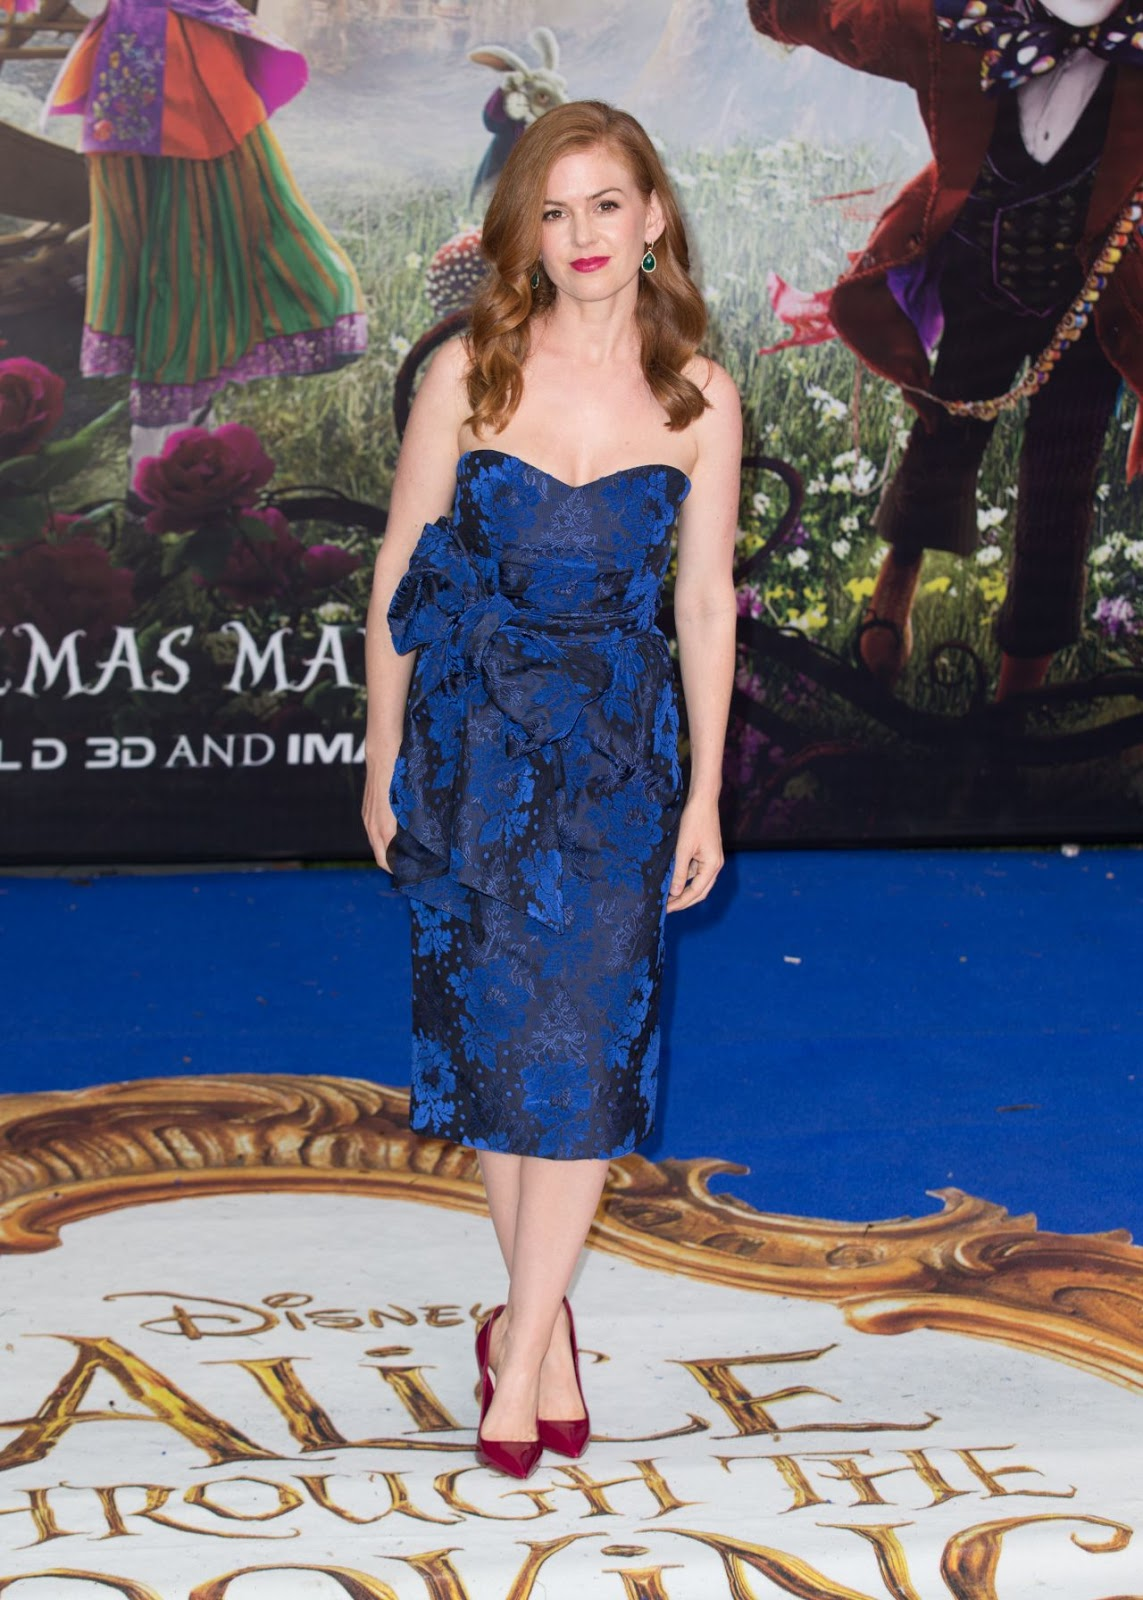 Isla Fisher flaunts figure in strapless dress at 'Alice Through The Looking Glass' premiere